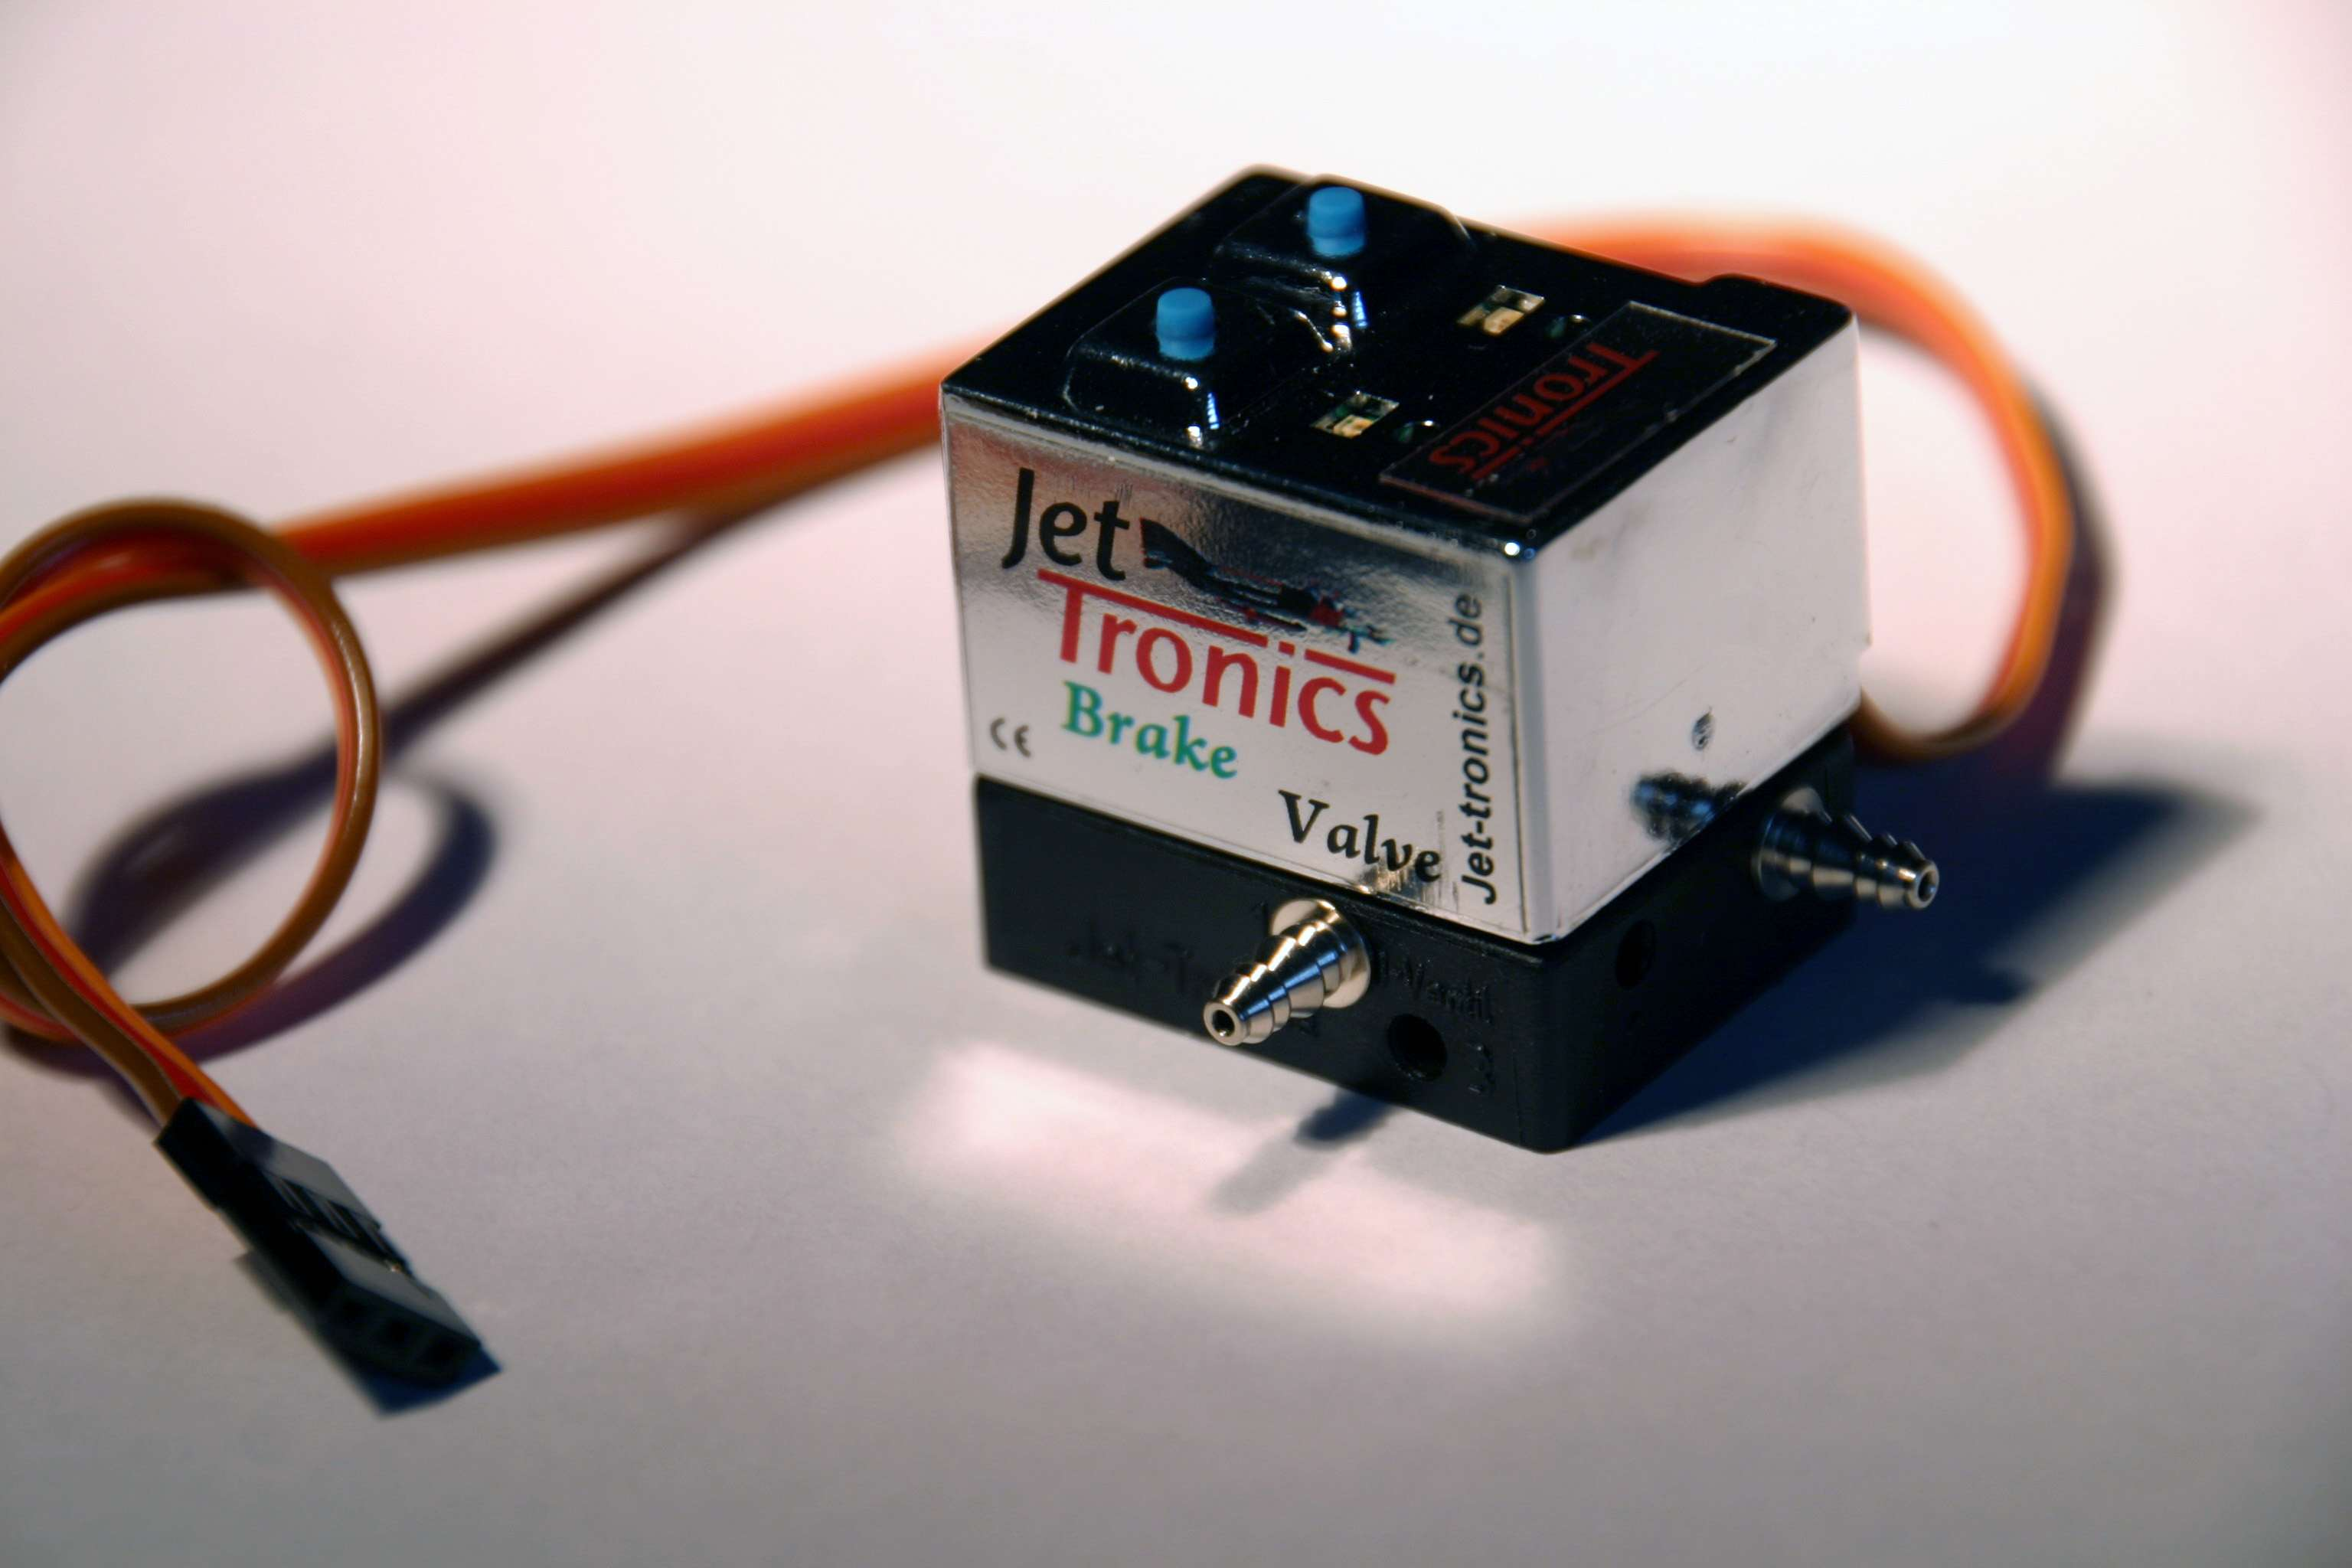 JetTronics Brake Valve